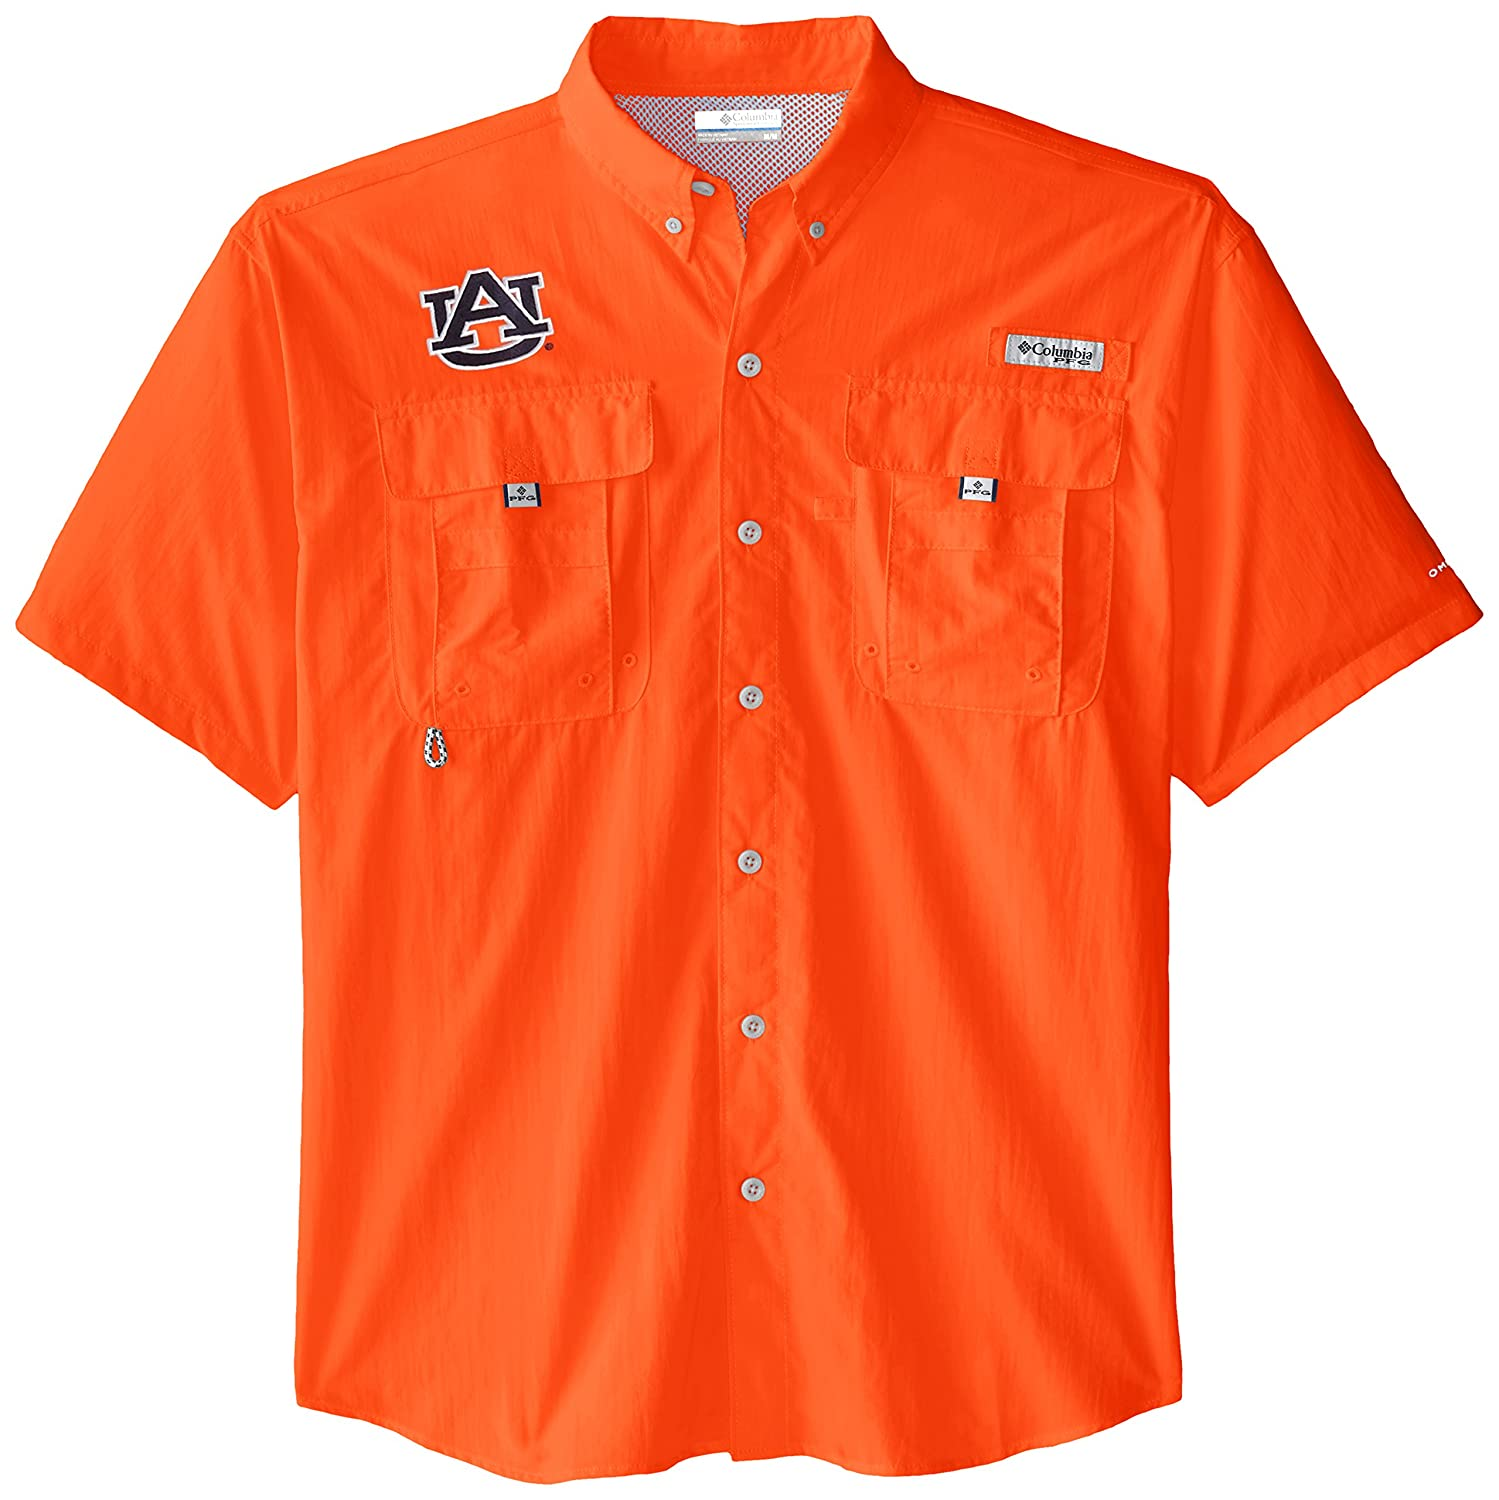 Spark Orange NCAA Auburn Tigers Mens Collegiate Bahama Short Sleeve Shirt Medium